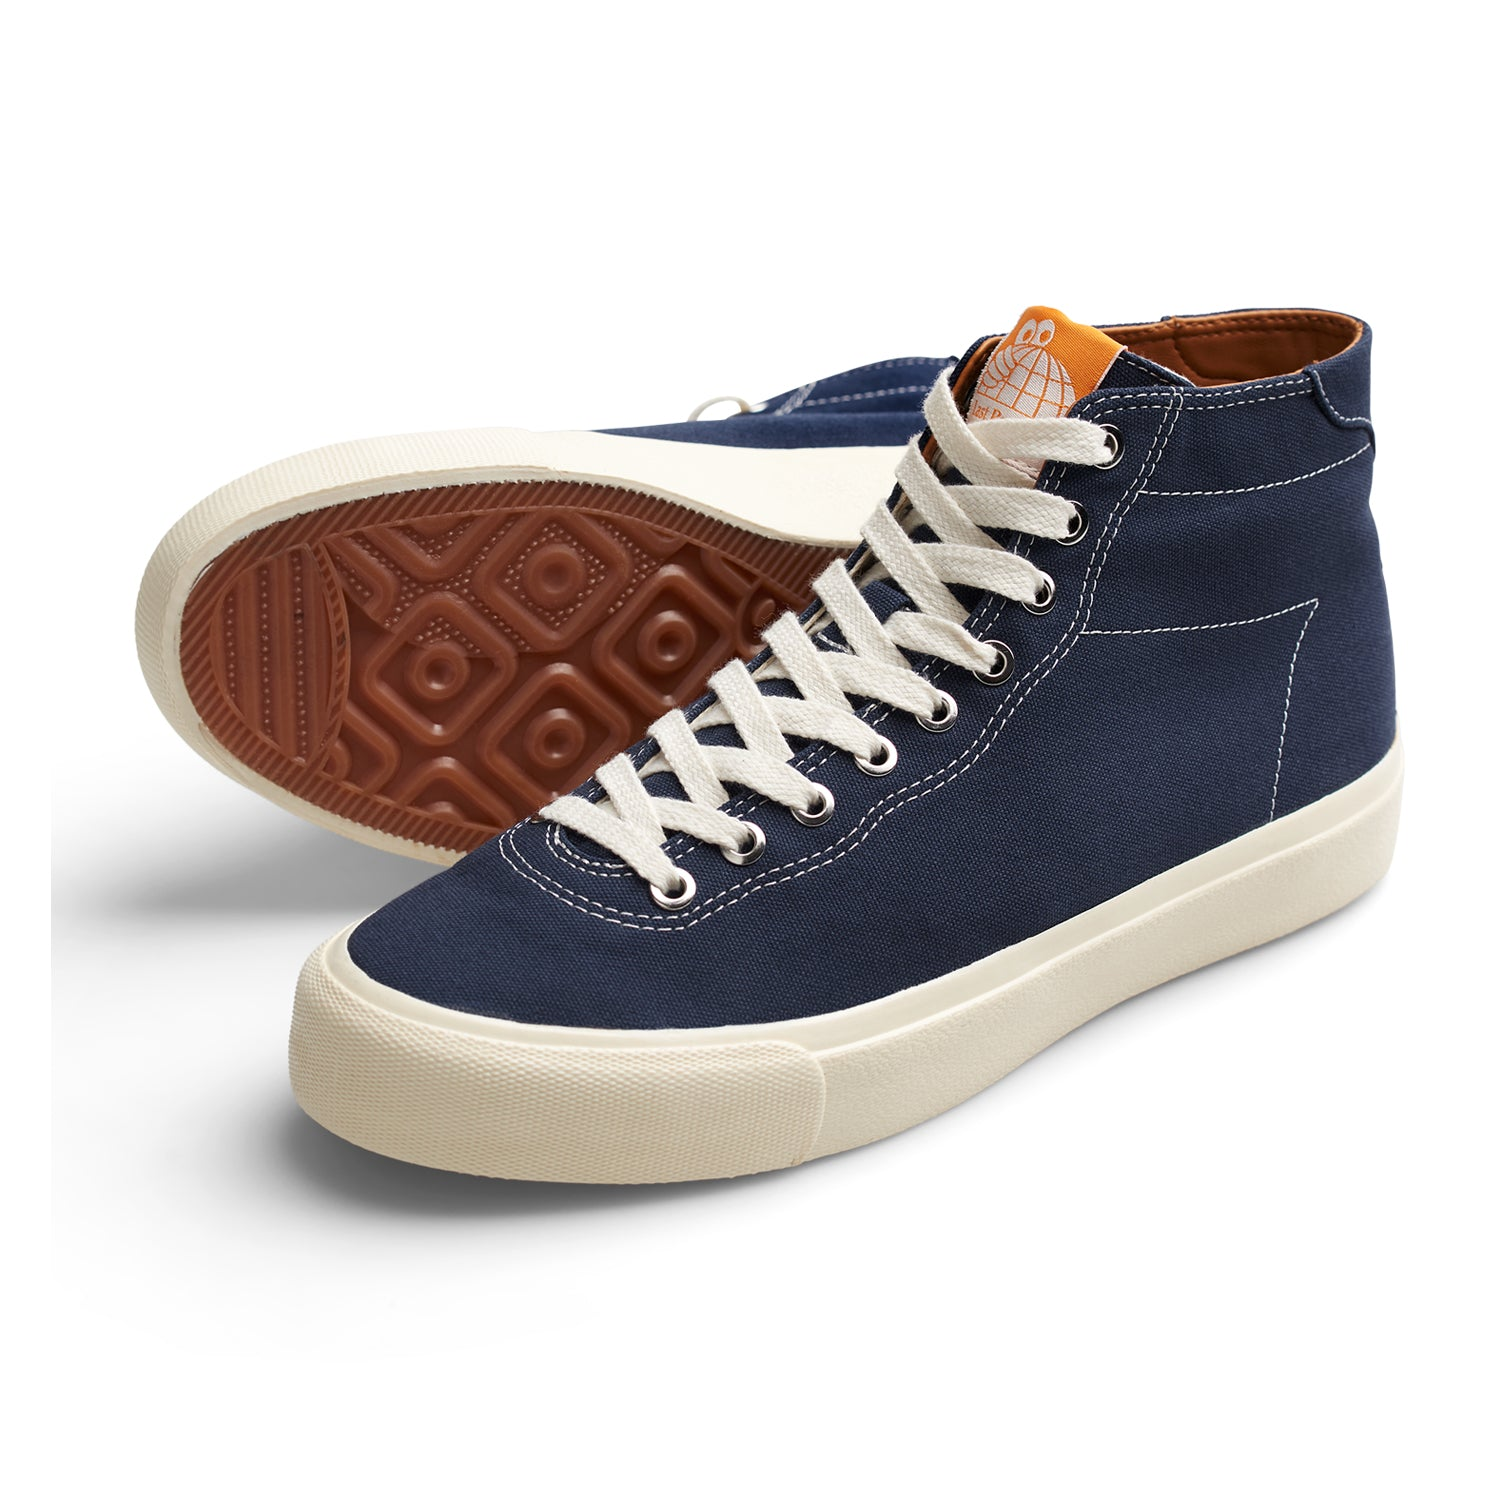 Last Resort AB VM001 Canvas Hi Blue/White